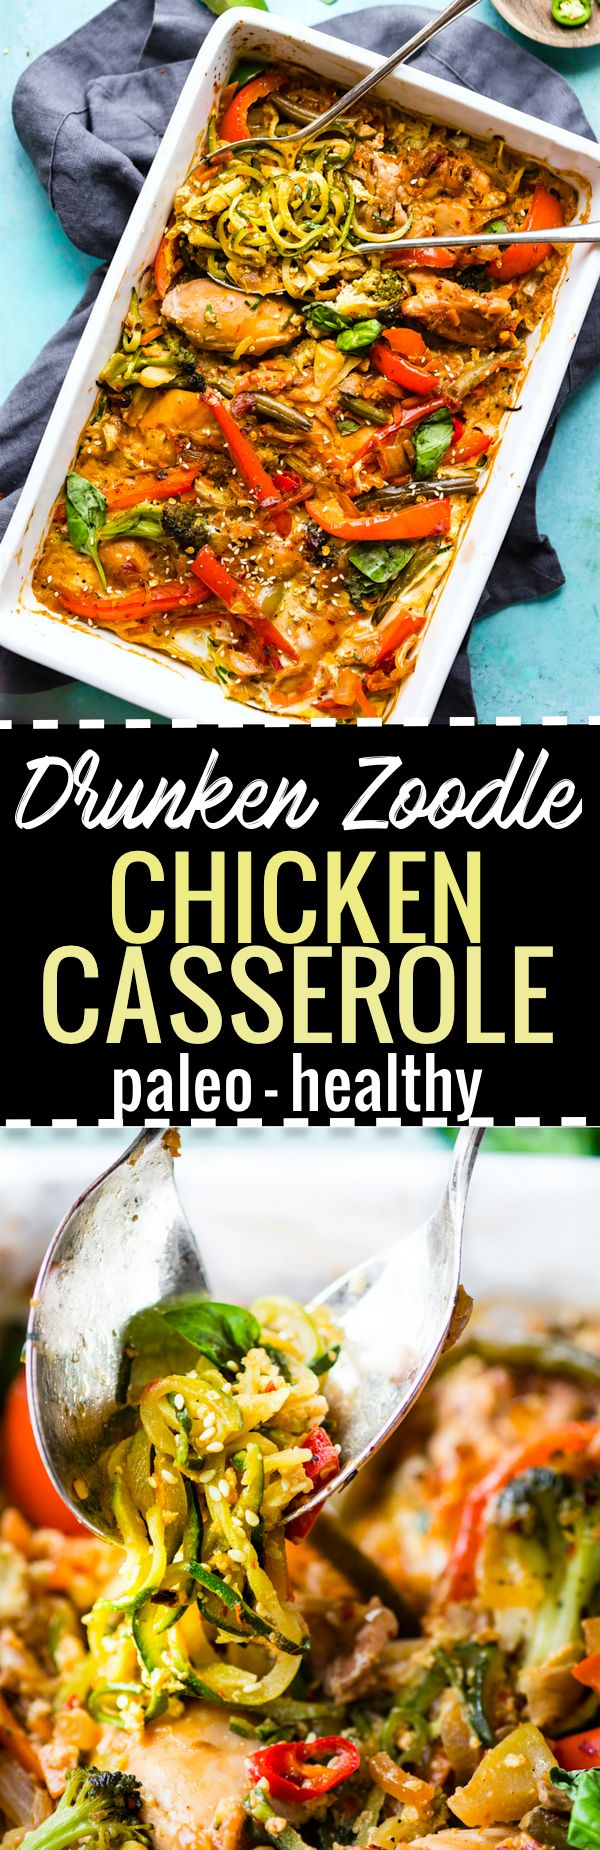 Paleo Drunken Zoodle Chicken Casserole takes a spin on the original Pad kee mao Asian stir fry and puts in casserole form.  Noodle Zoodle Chicken Casserole with tons of flavor, Thai spices, and simple healthy ingredients! Light and delicious.    *Updated* ingredients and cooking times on http://www.cottercrunch.com/